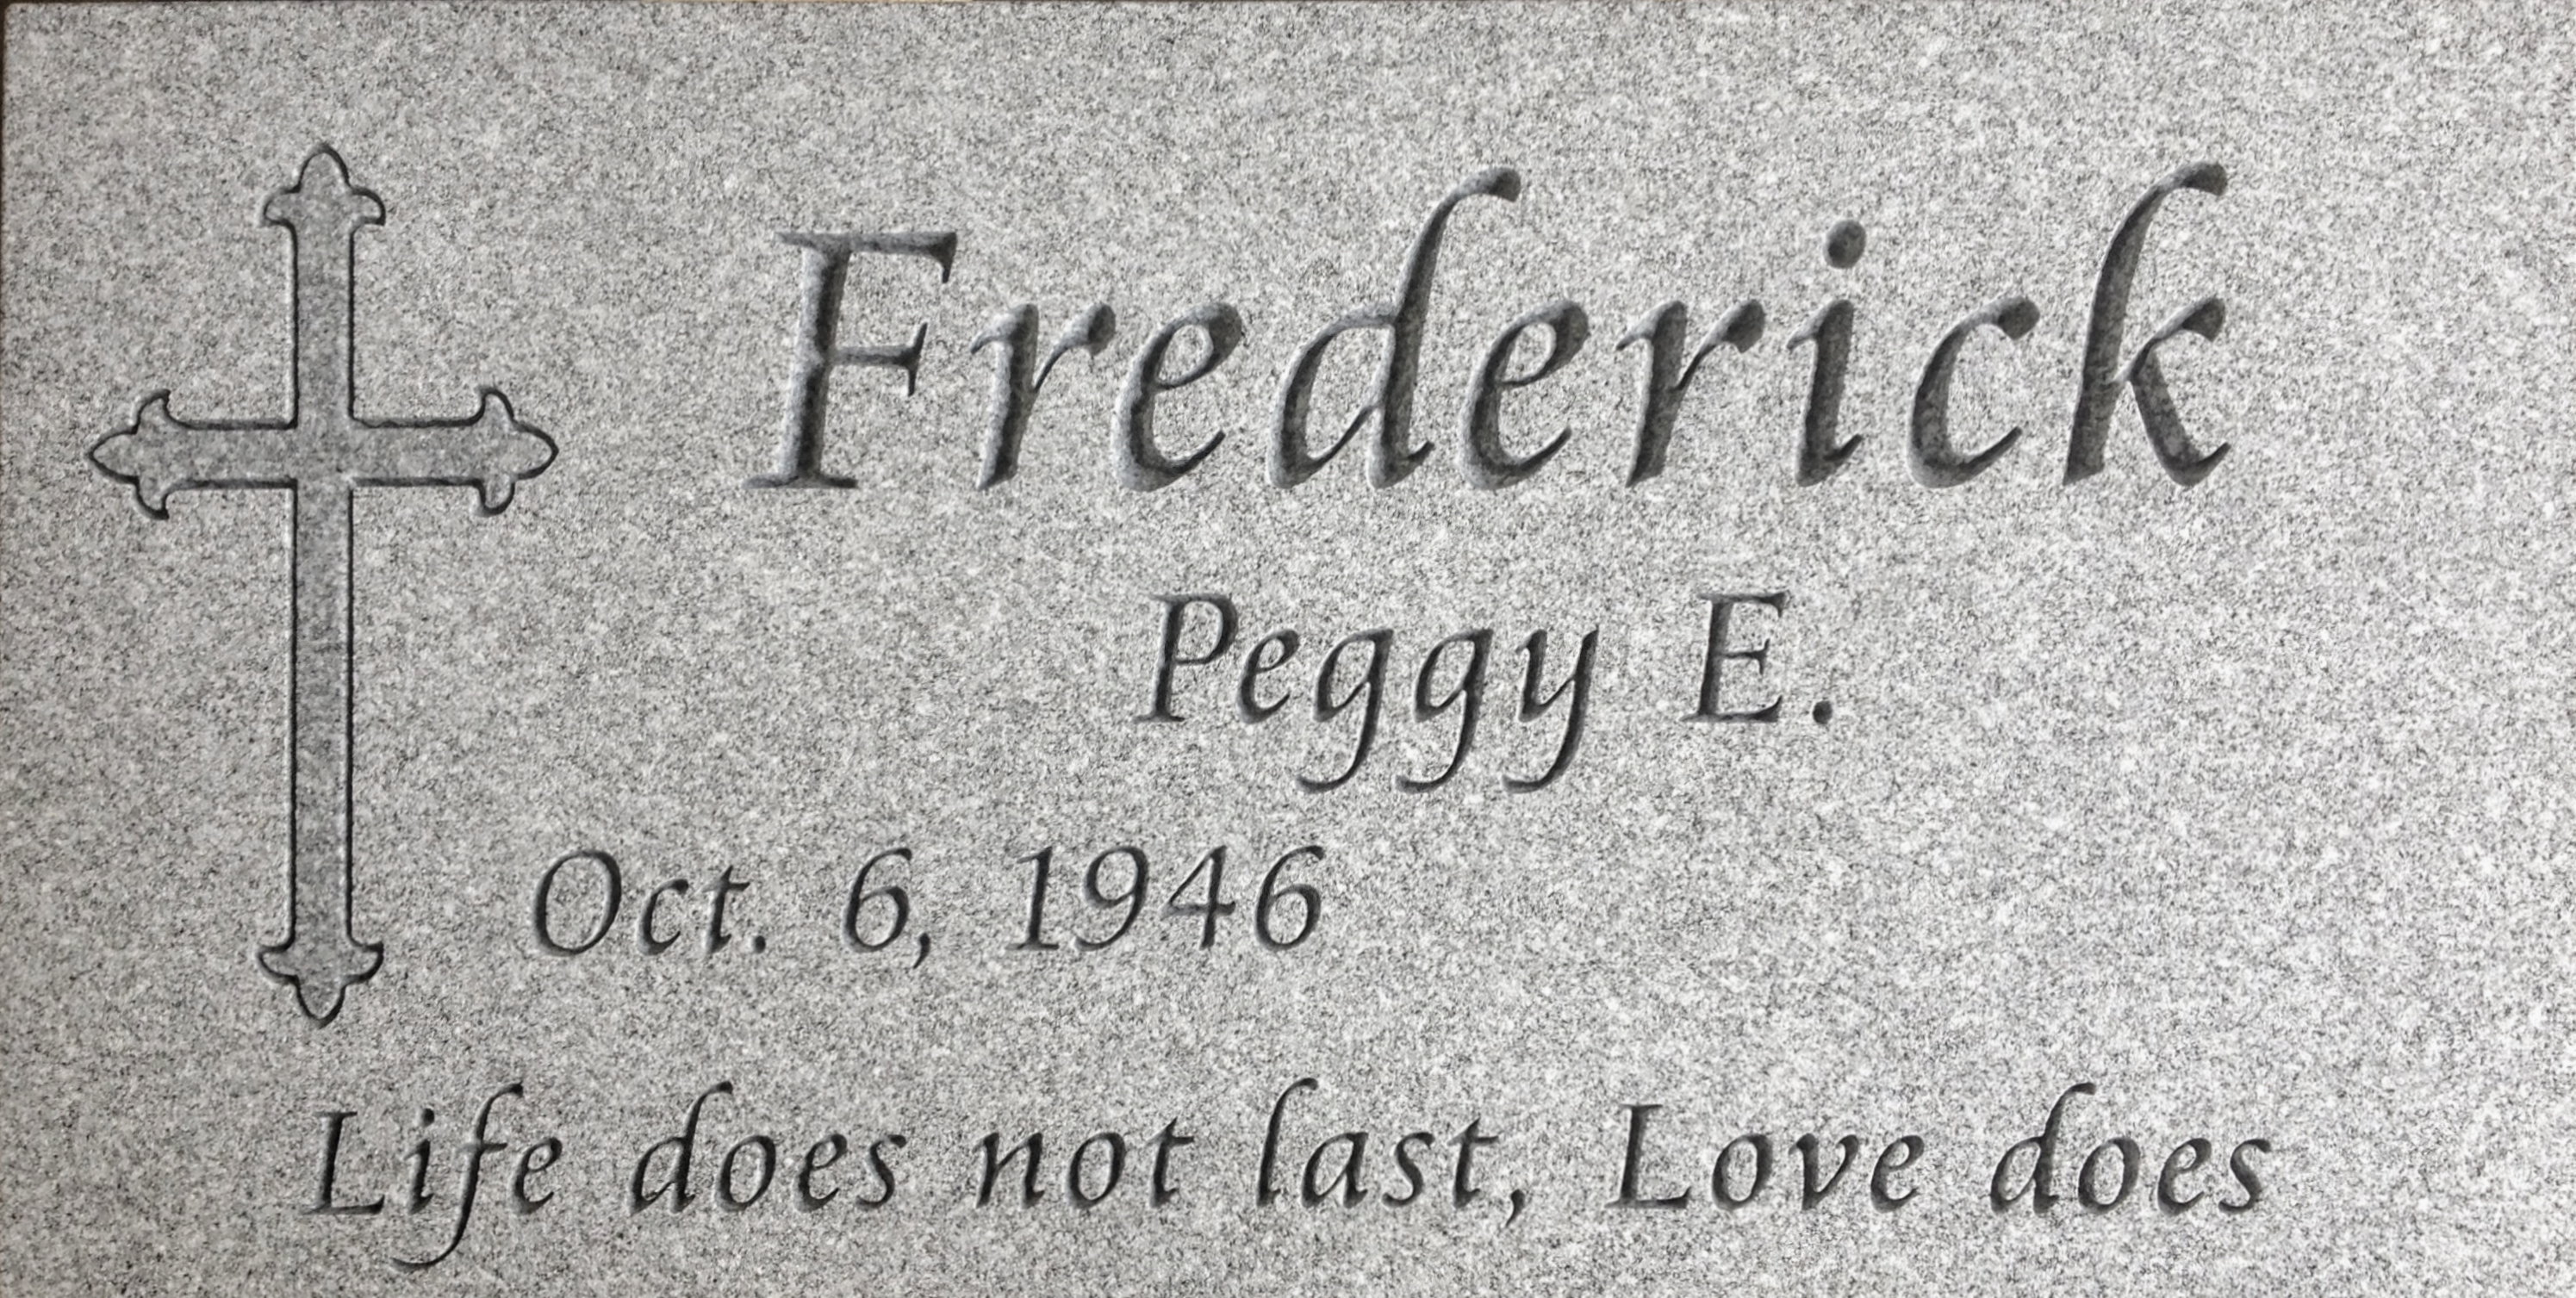 Steeled Barre - Frederick Peggy 17-0314